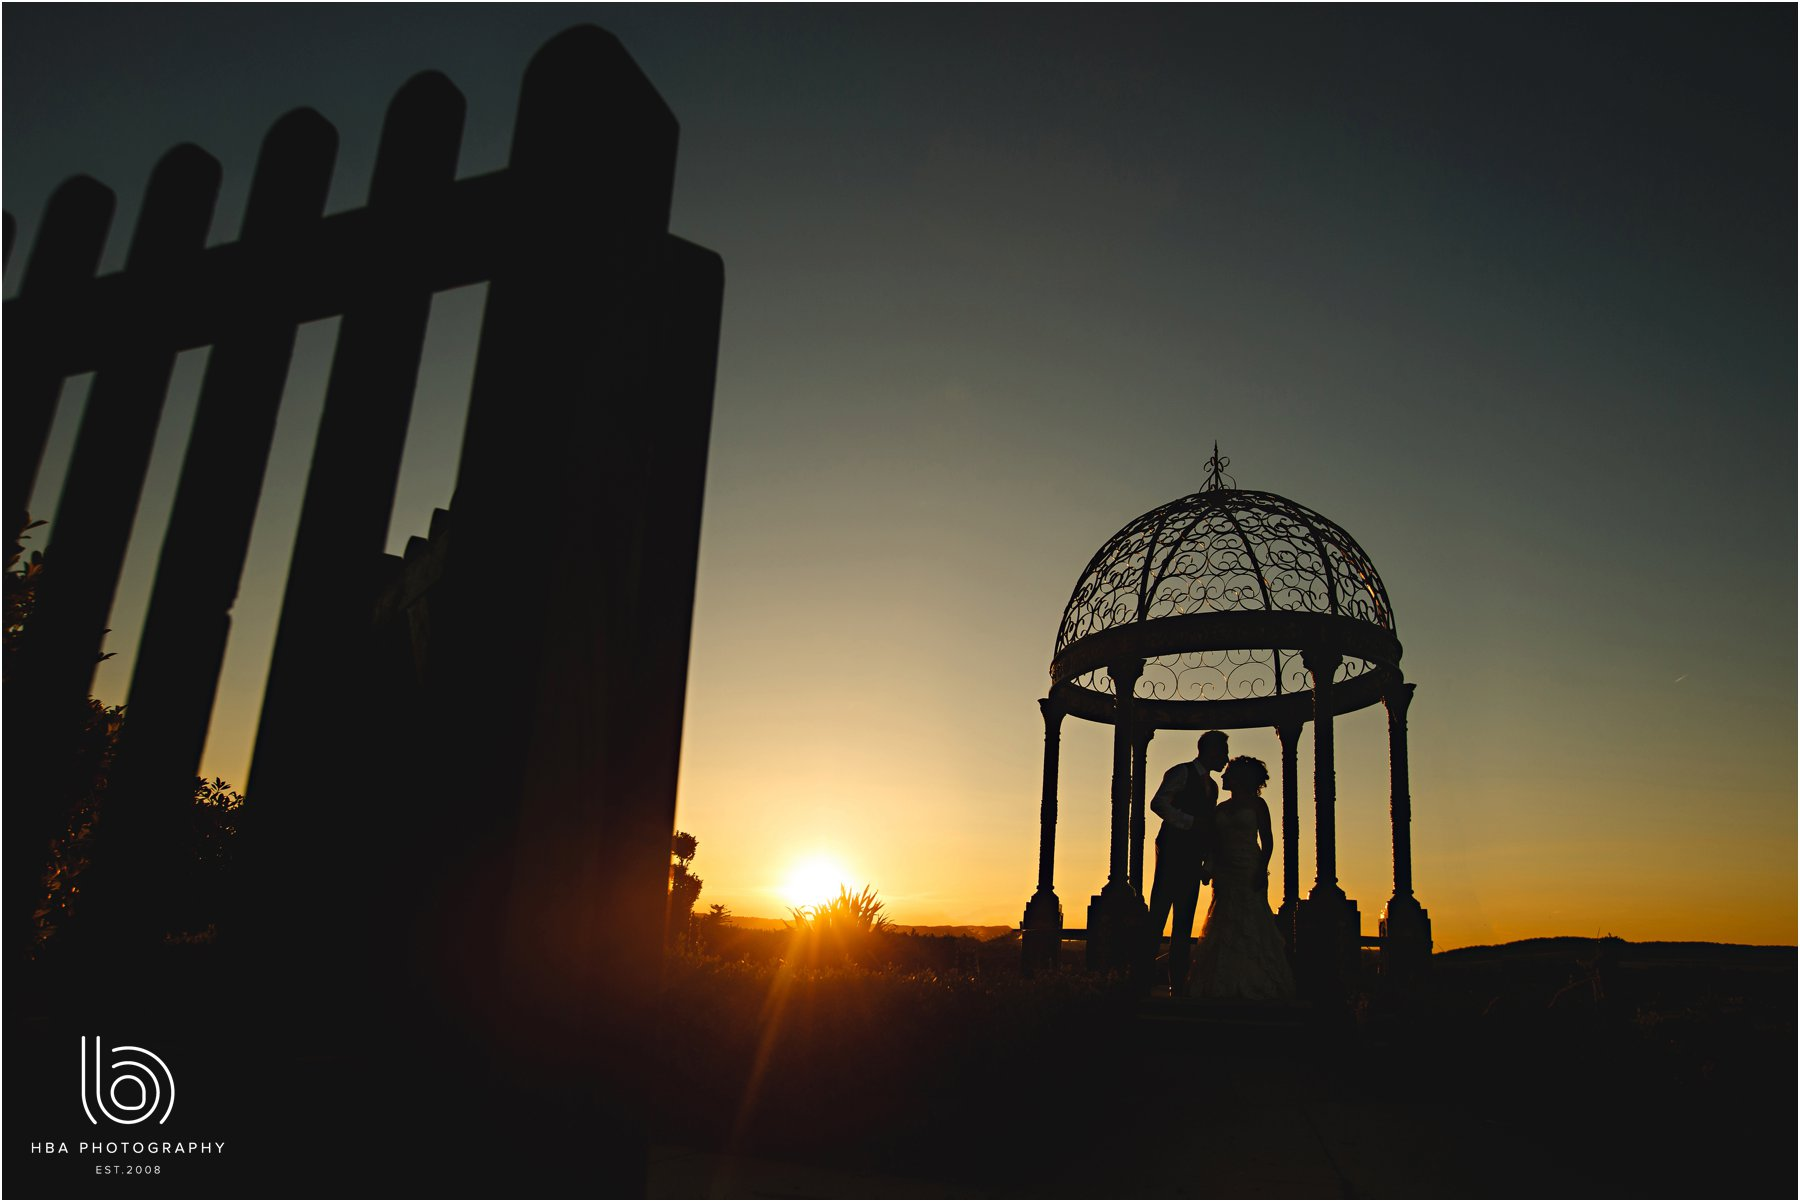 the bride & groom in silhouette